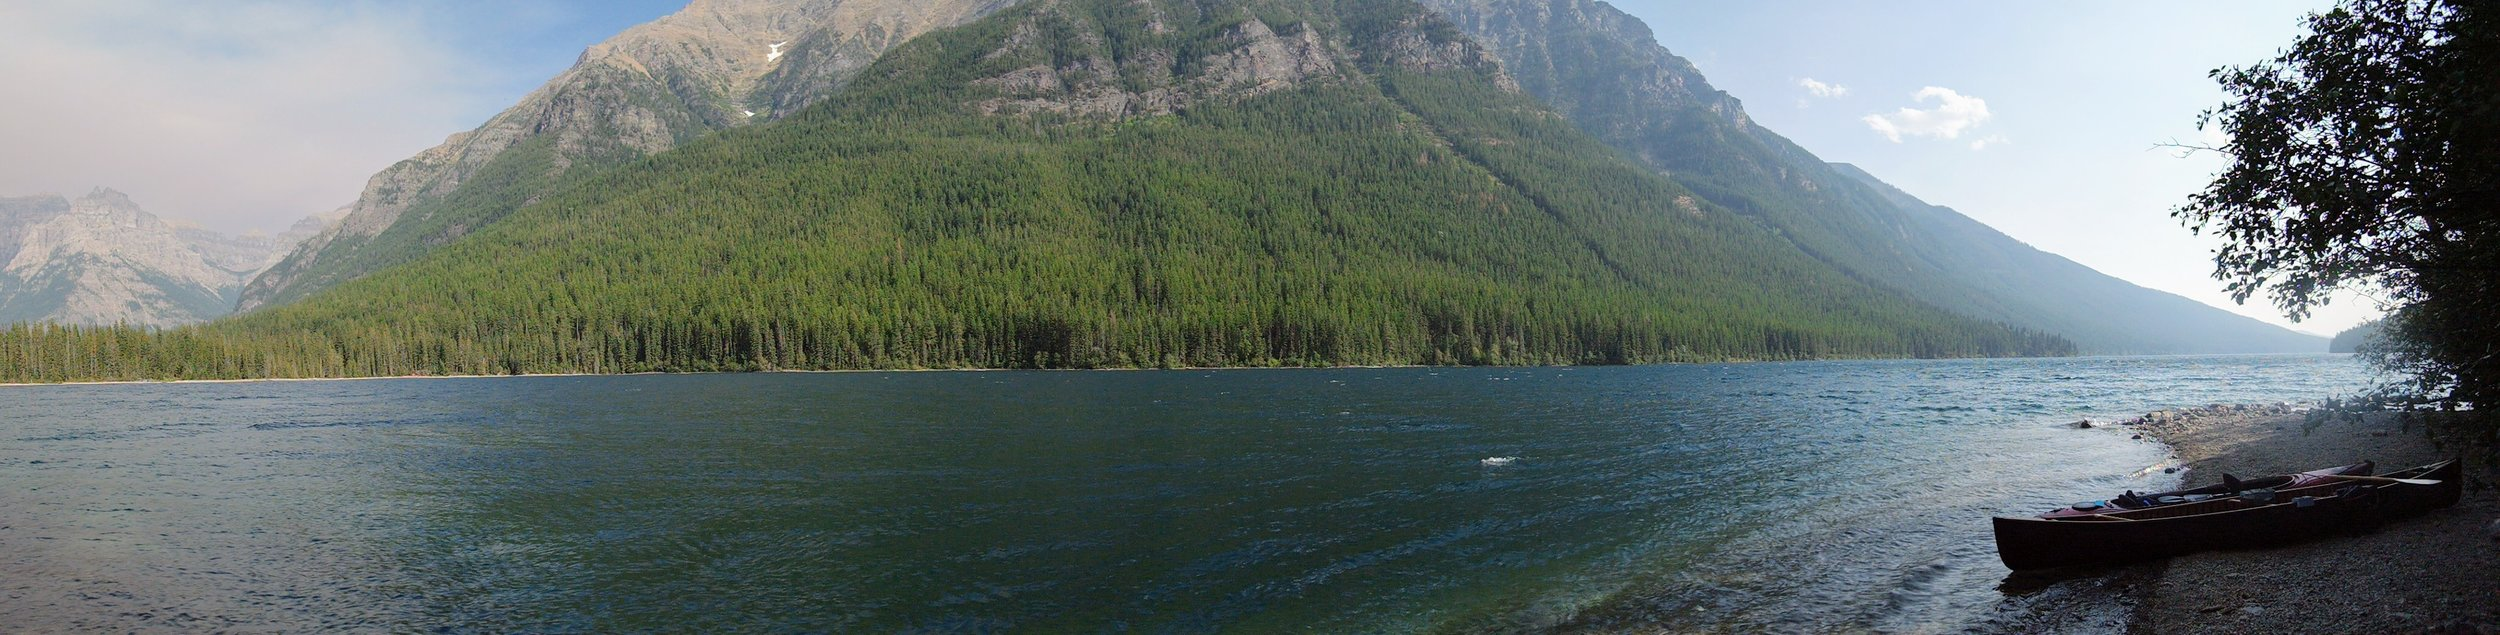 View of the lake from Bowman Lake Head Campground